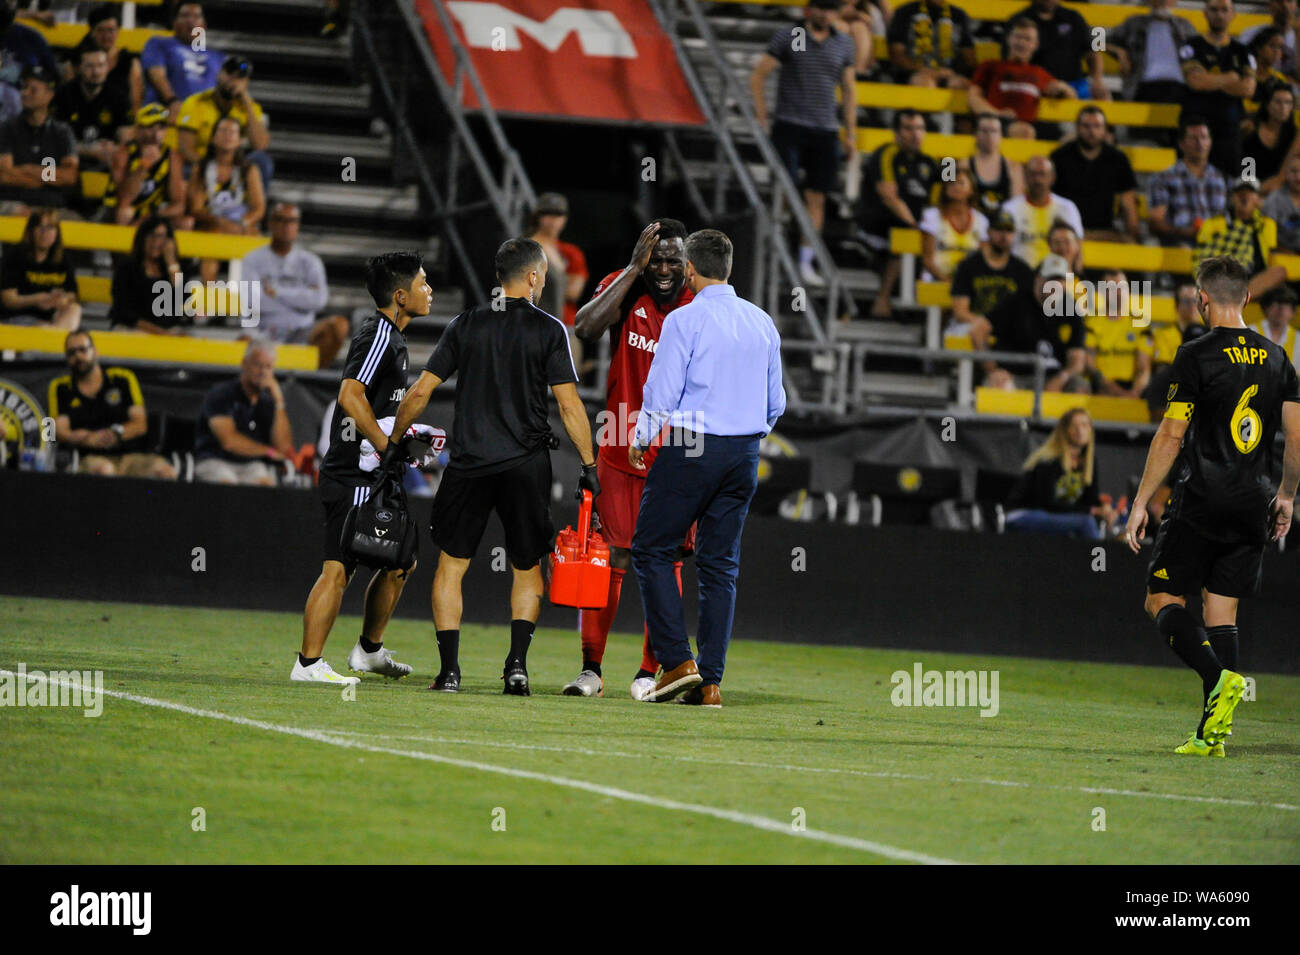 Saturday, August 17, 2019: Toronto FC forward Jozy Altidore (17) leaves the field with am apparent head injury in the second half of the match between Toronto FC and Columbus Crew SC at MAPFRE Stadium, in Columbus OH. Mandatory Photo Credit: Dorn Byg/Cal Sport Media. Toronto FC 2 - Columbus Crew SC 2 at the end of the first half. Stock Photo